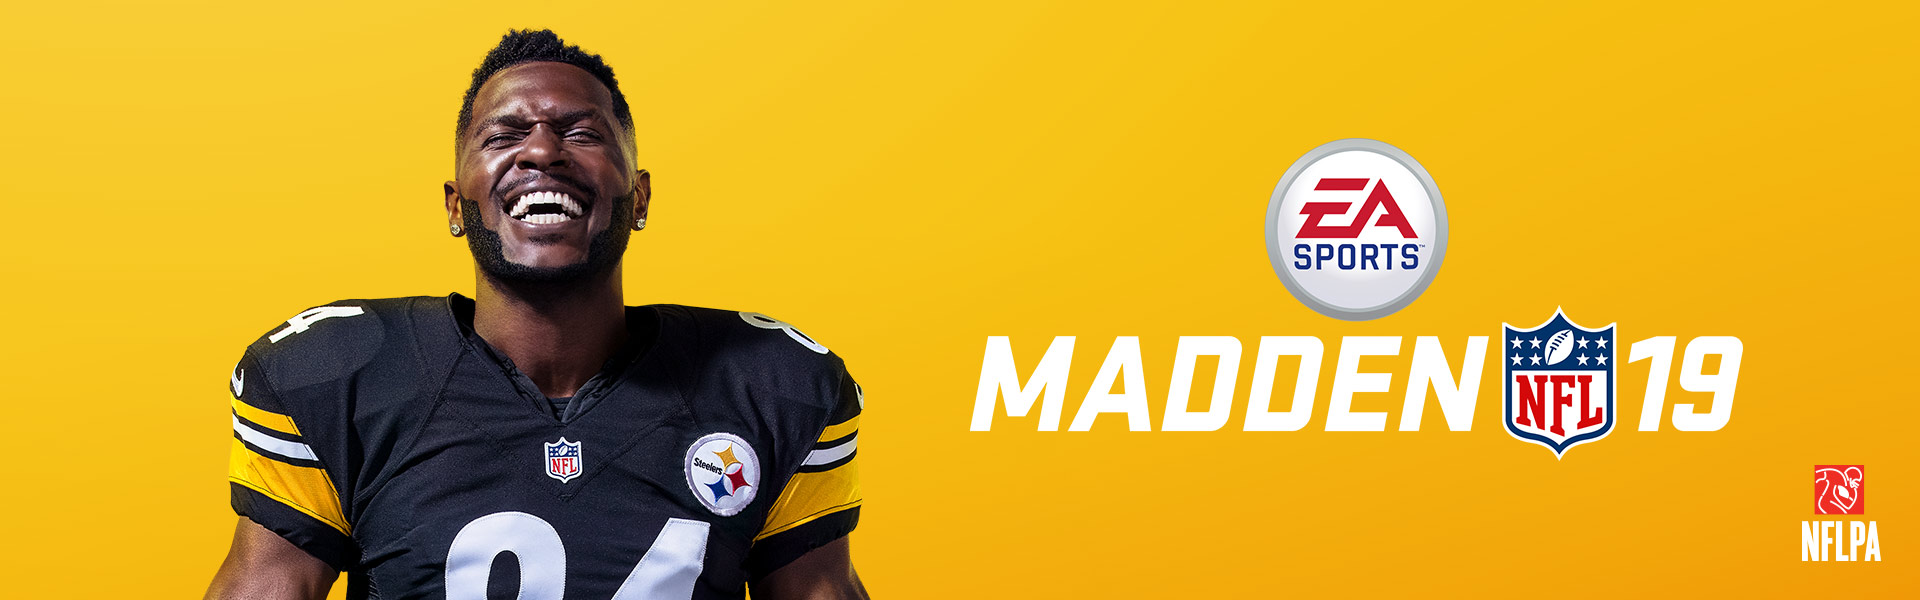 EA Sports Madden NFL 19, Antonio Brown, ravit, esquisse un sourire